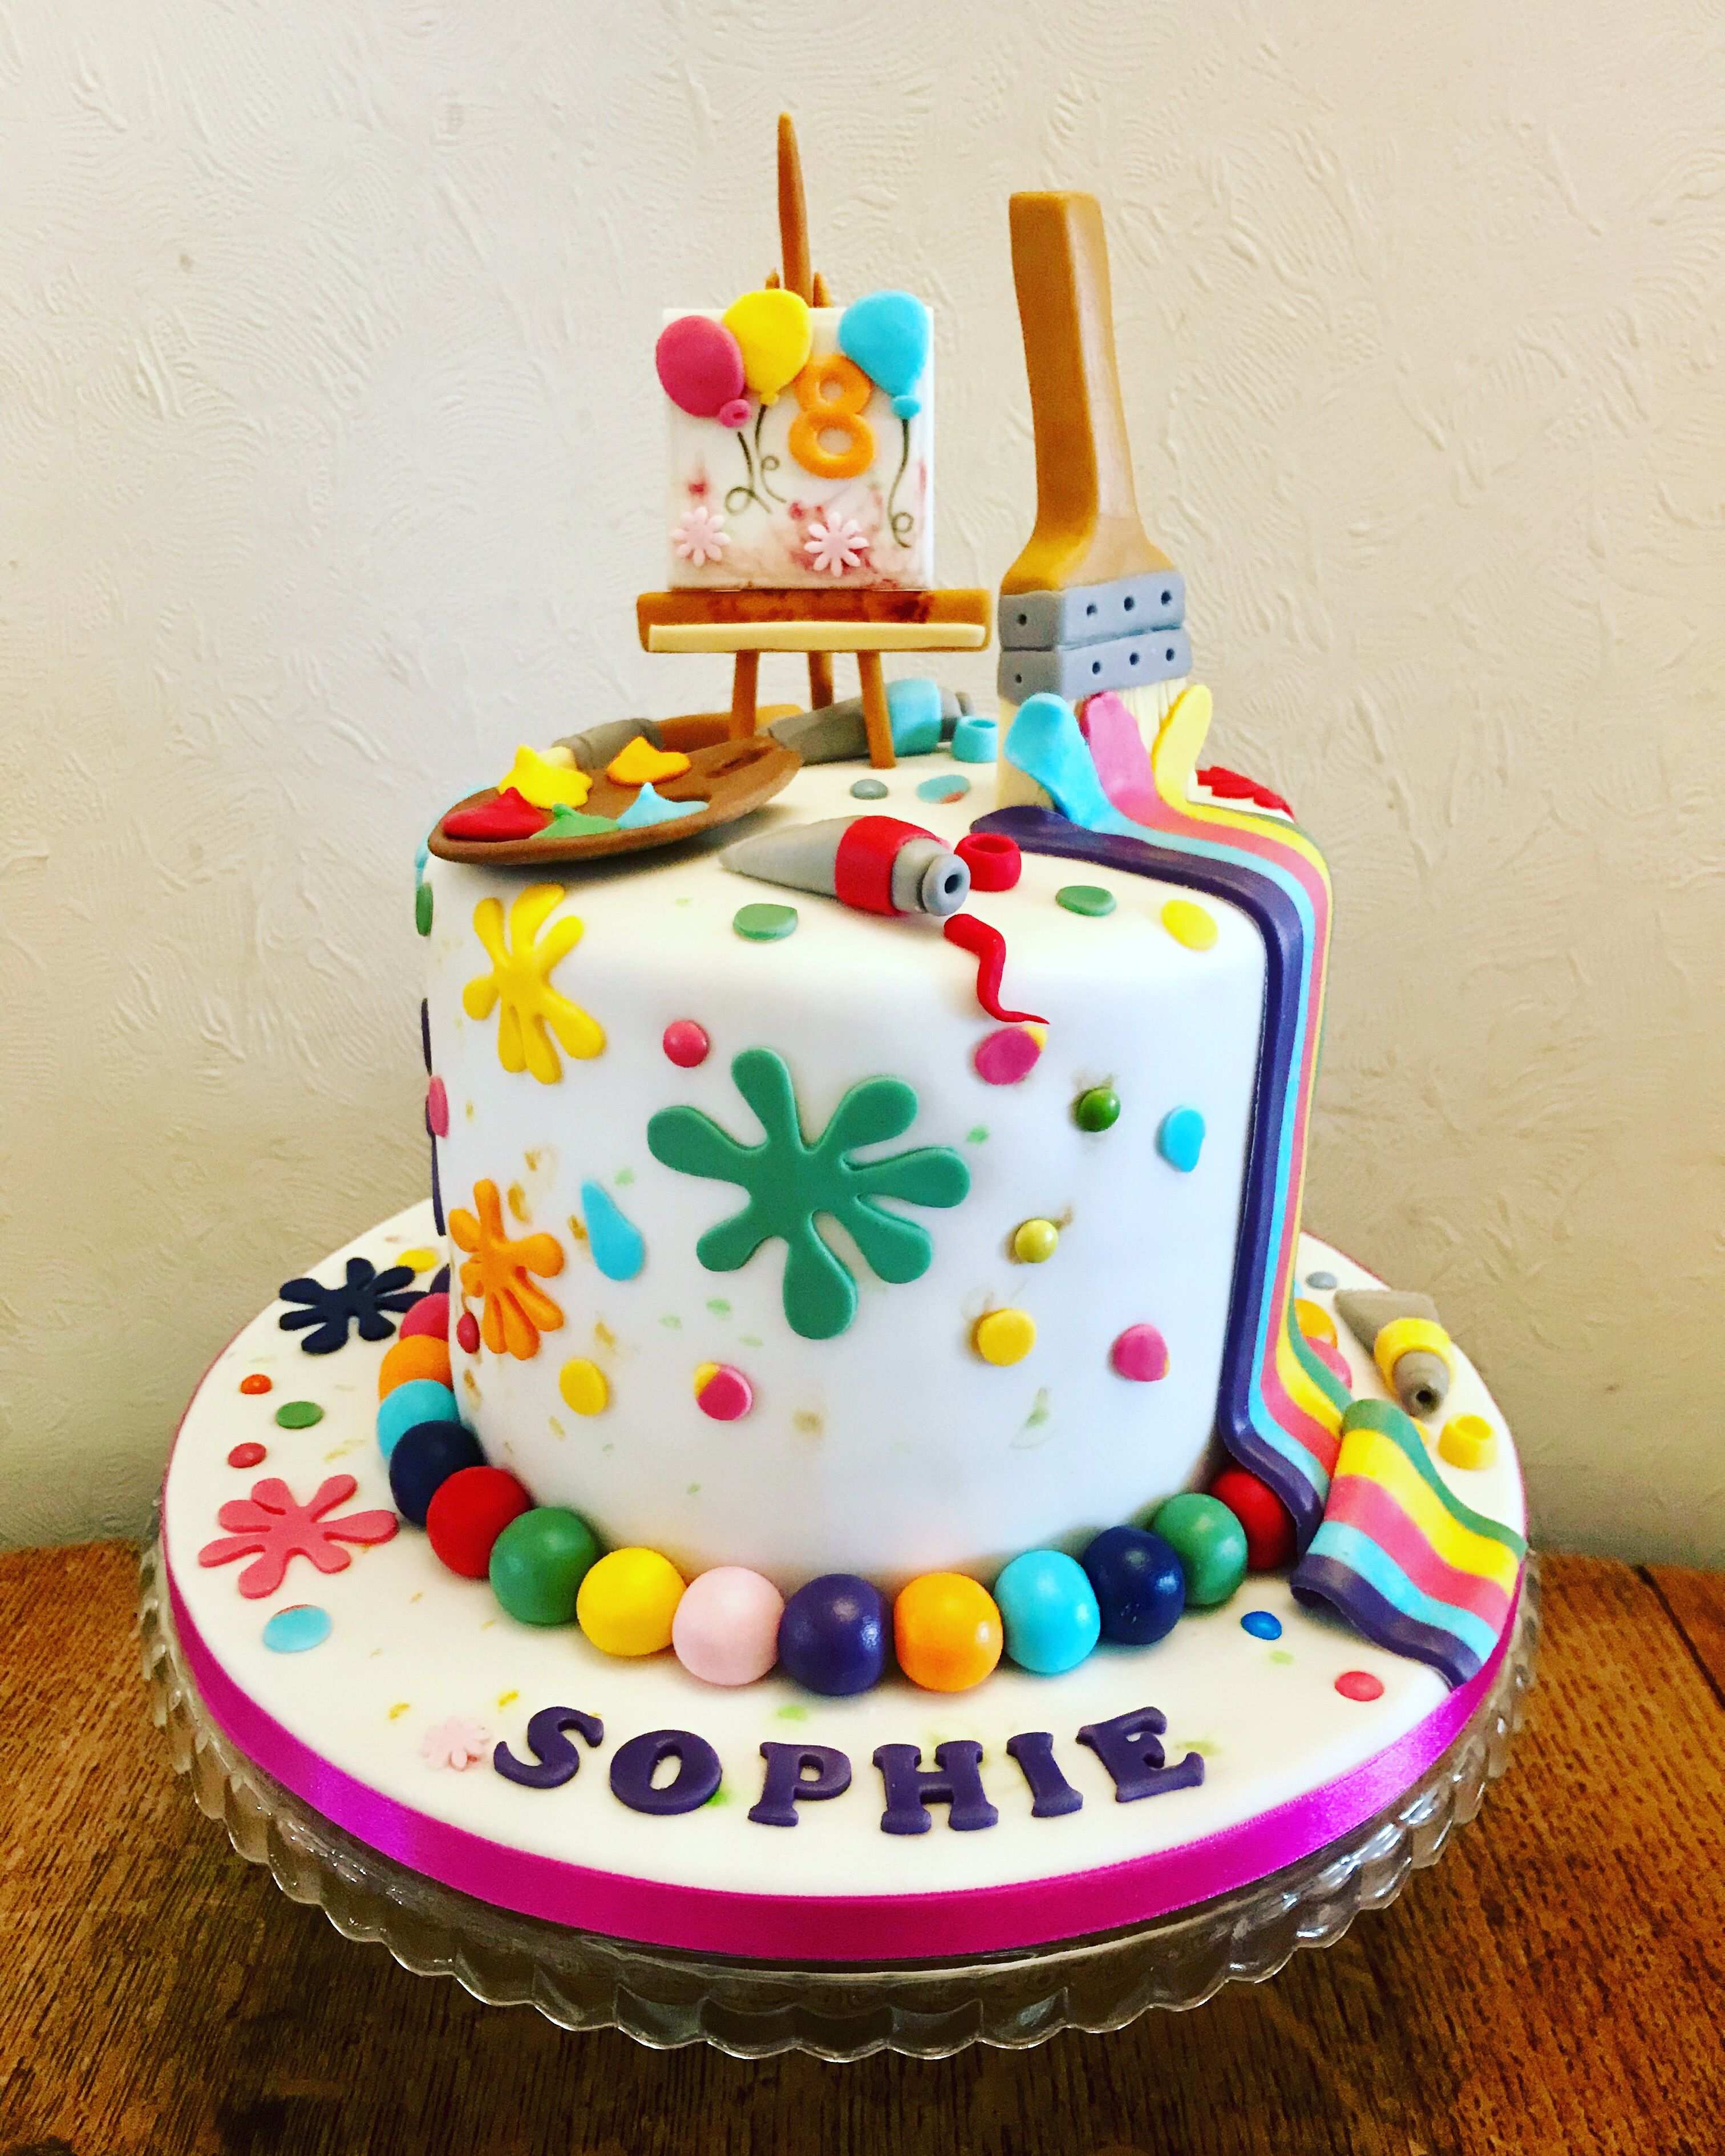 Art Themed Cake With Images Themed Birthday Cakes Birthday